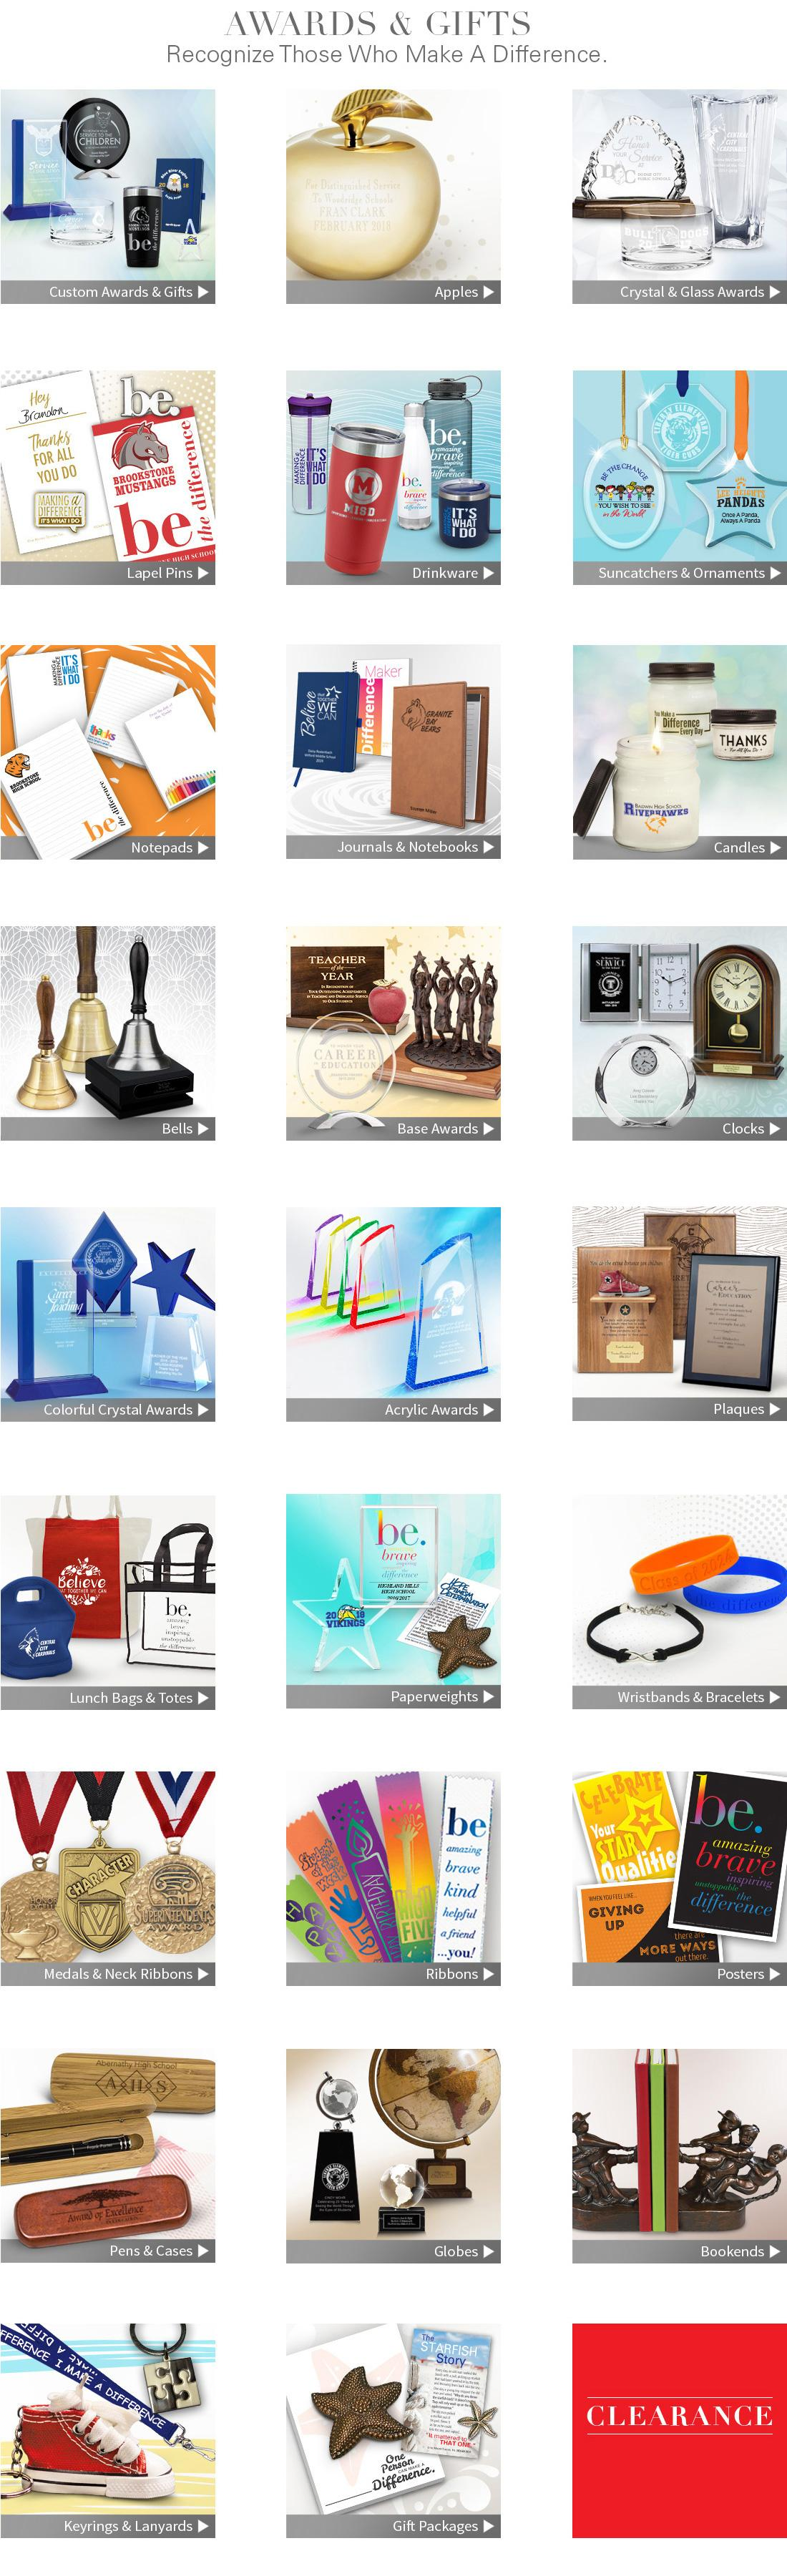 Shop Award and Gift Items